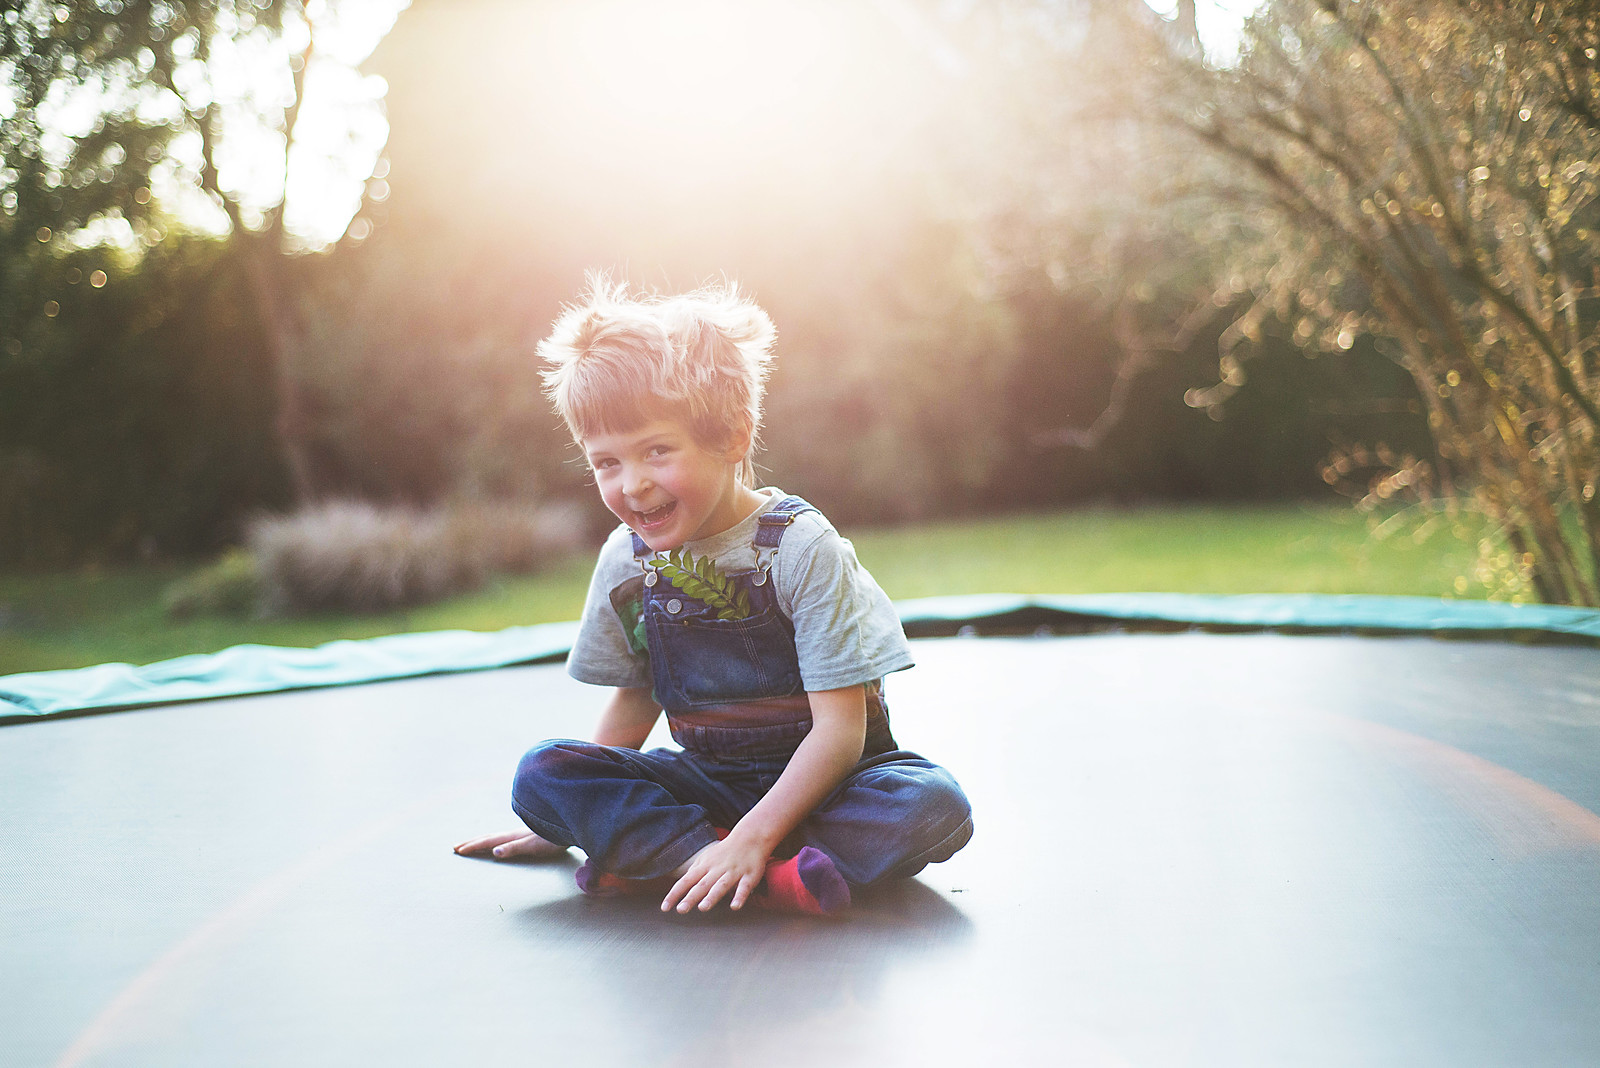 How to take great photos on a trampoline - Chase the sunlight and make the most of the lovely afternoon sun when it is low in the sky